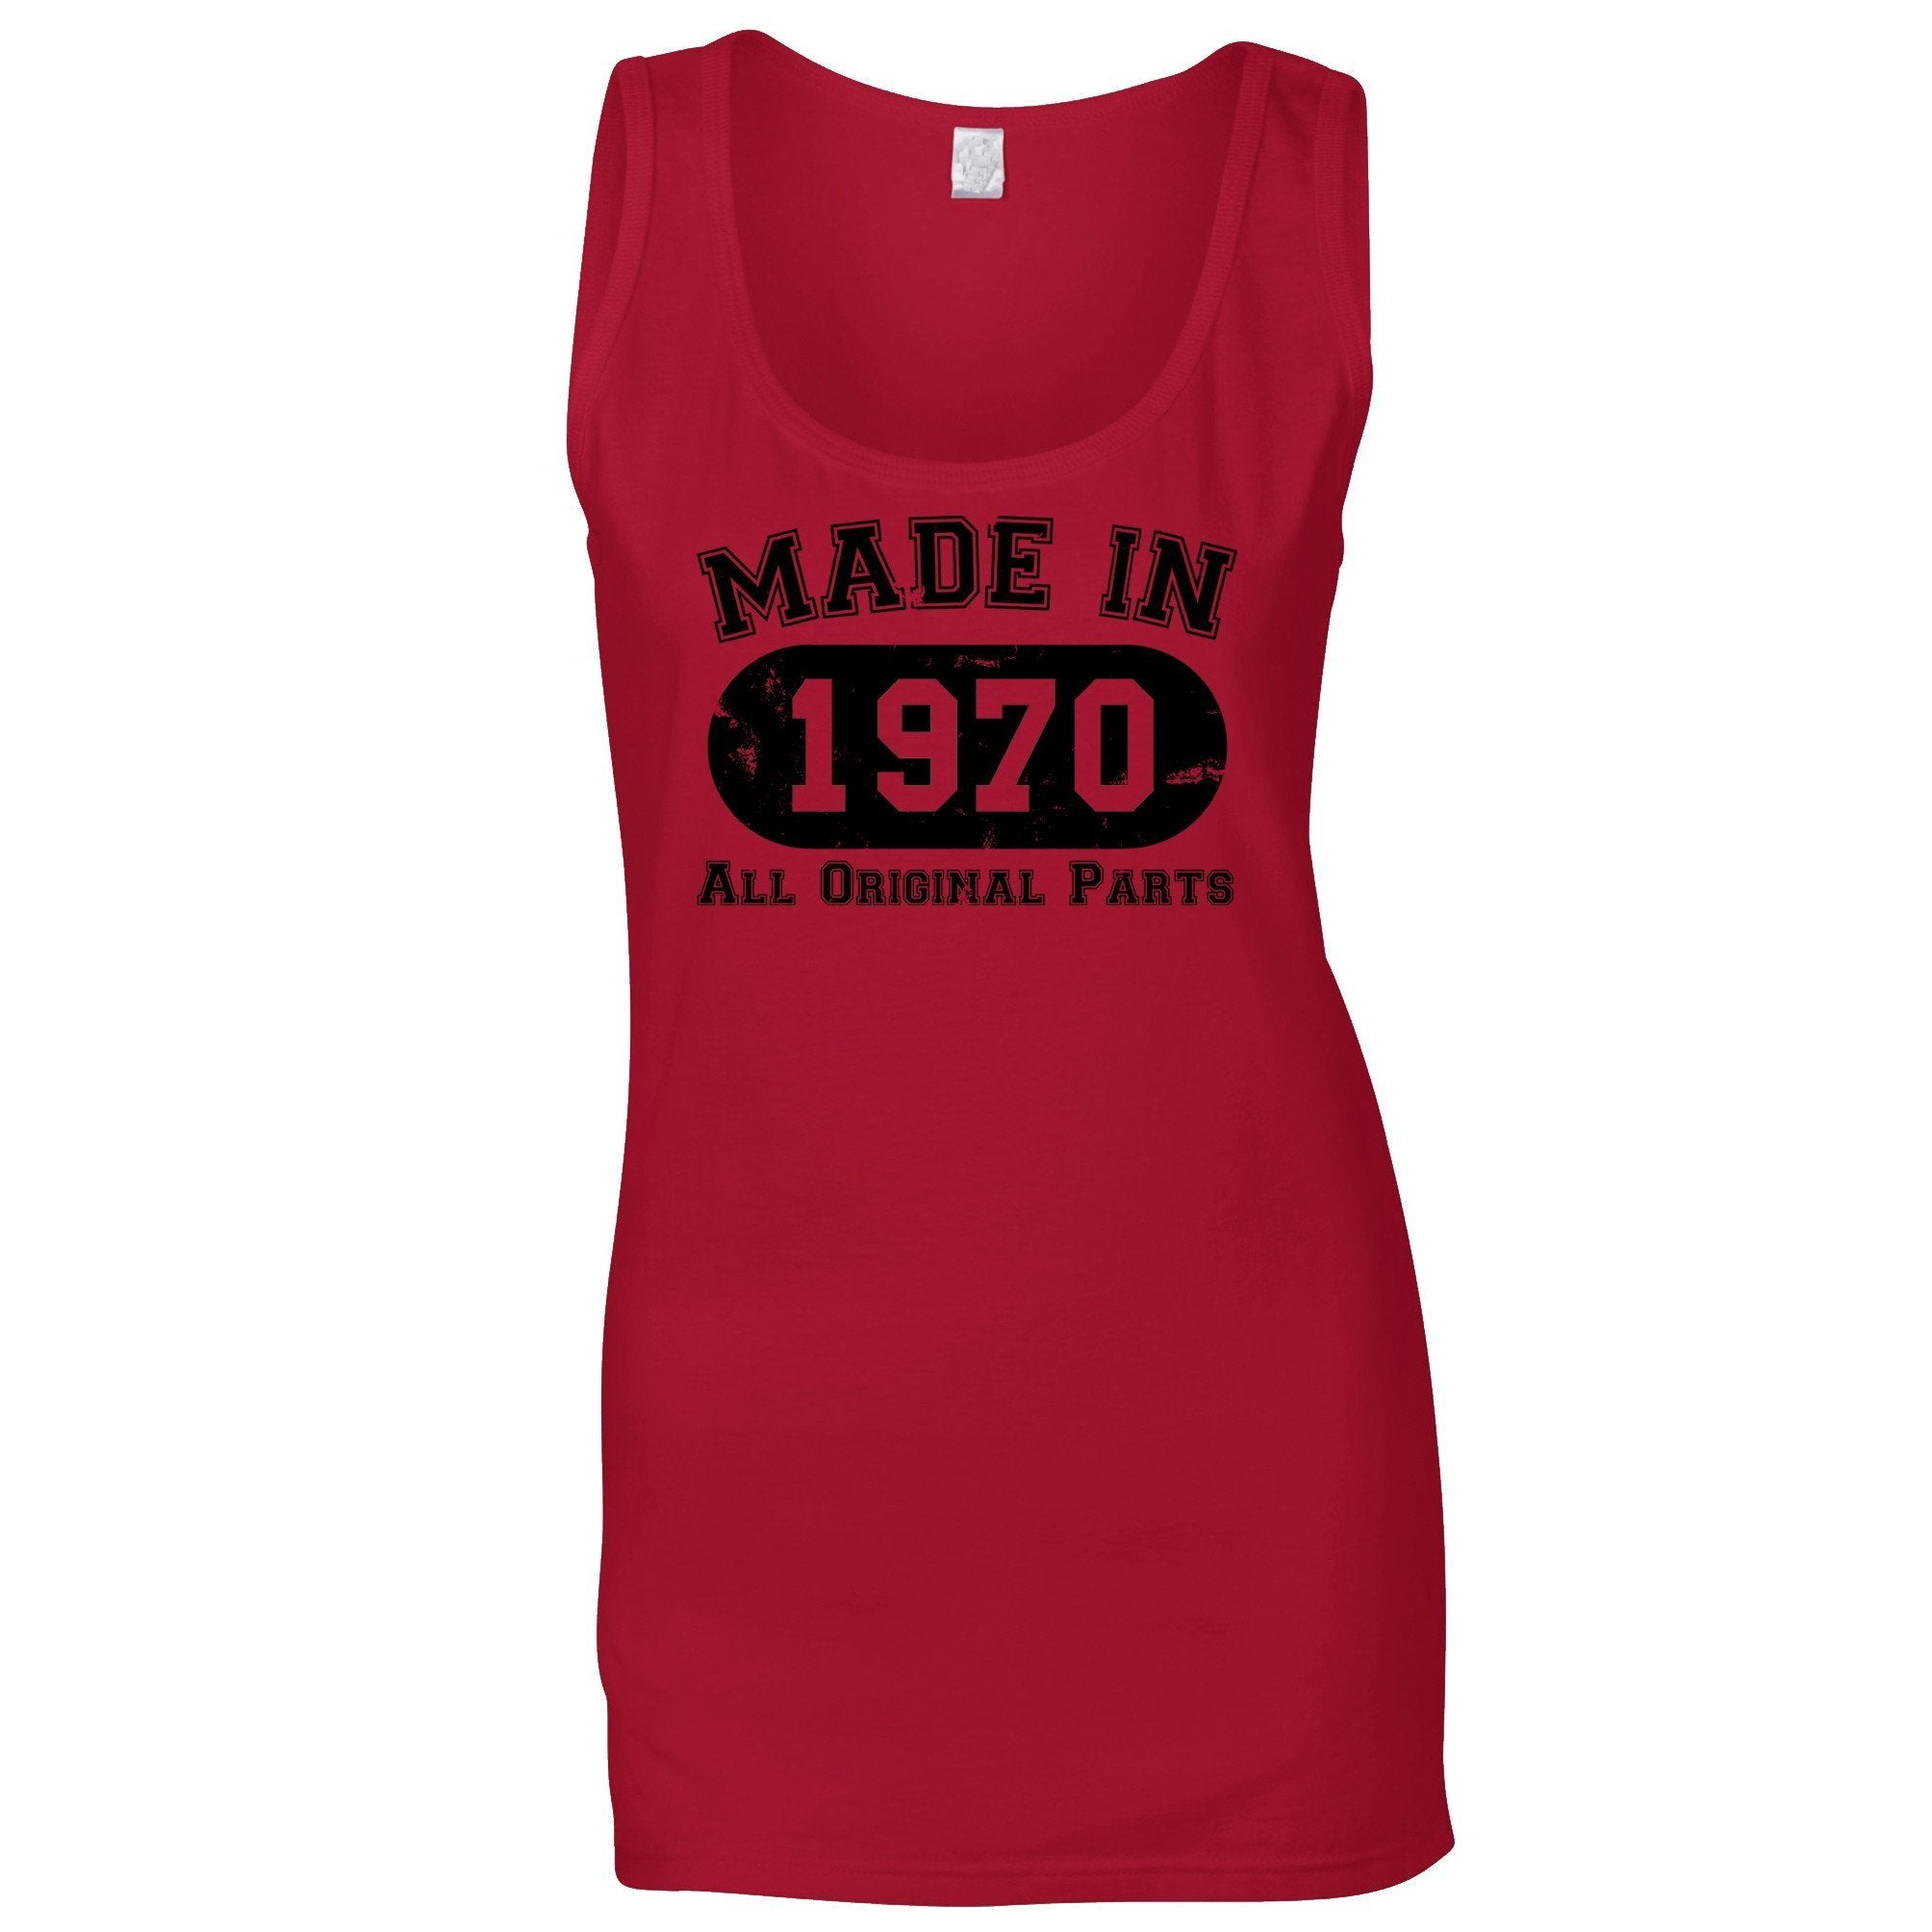 Made in 1970 All Original Parts Womens Vest [Distressed]